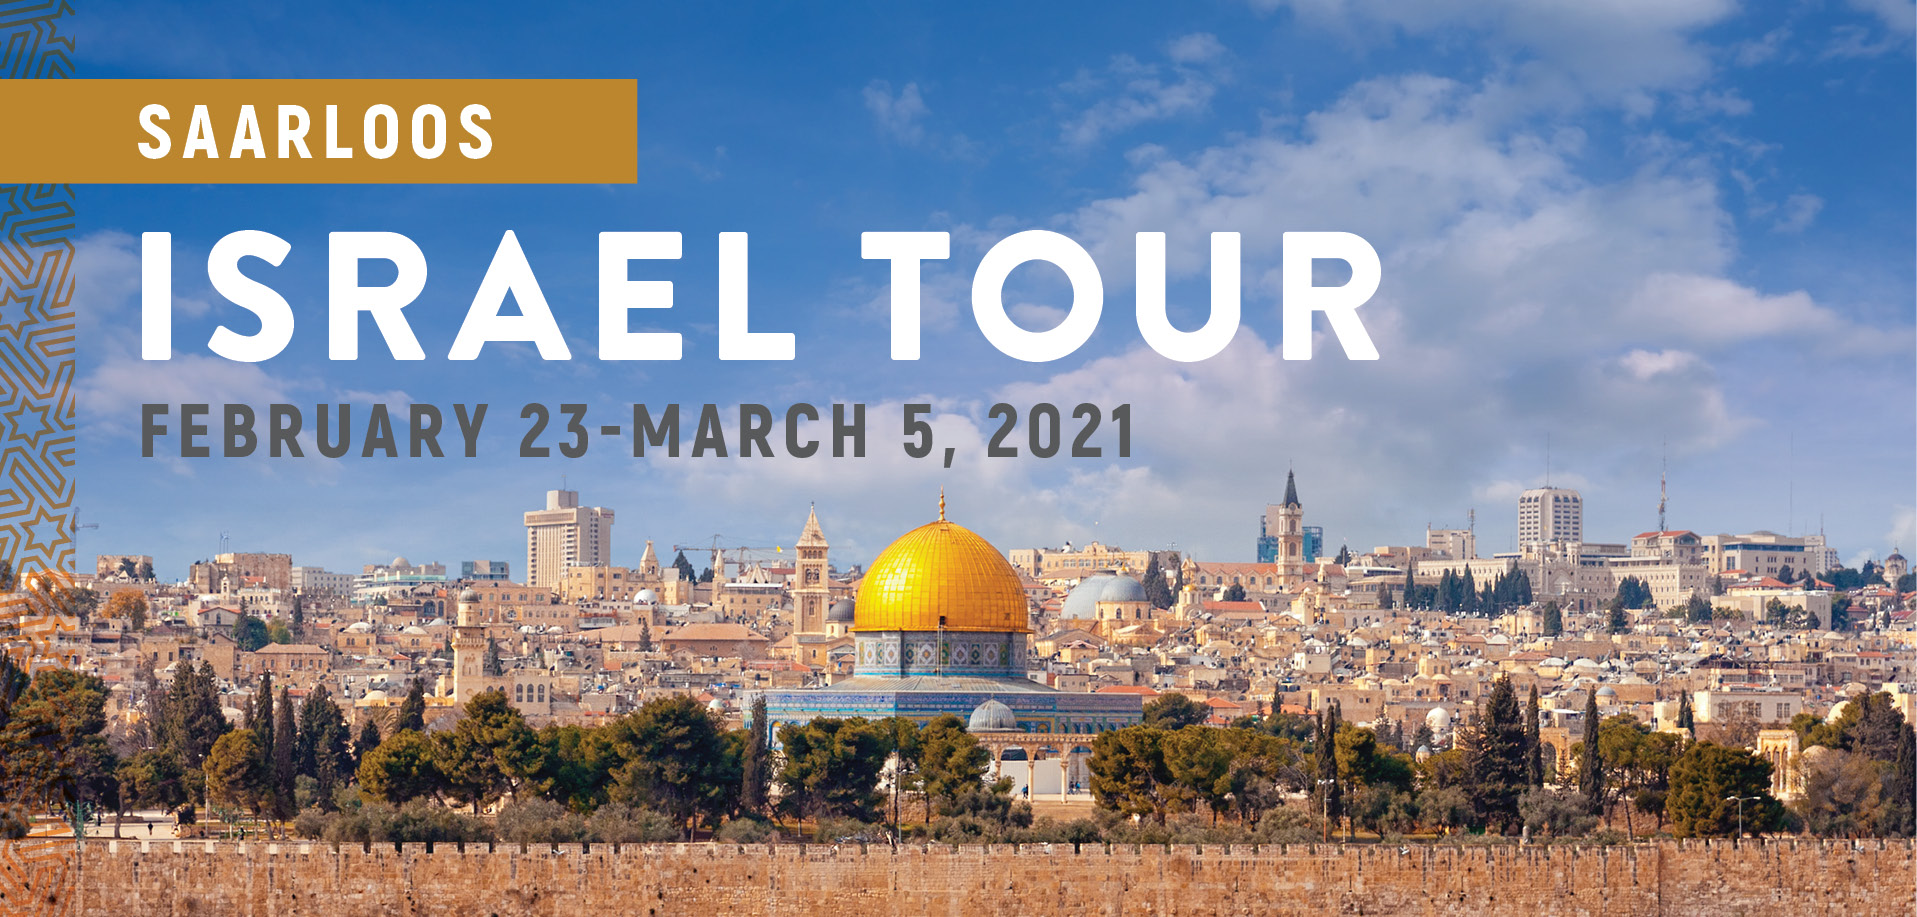 Take a Christian TourWOX with Harvey Saarloos - Israel Tour - February 23-March 5, 2021